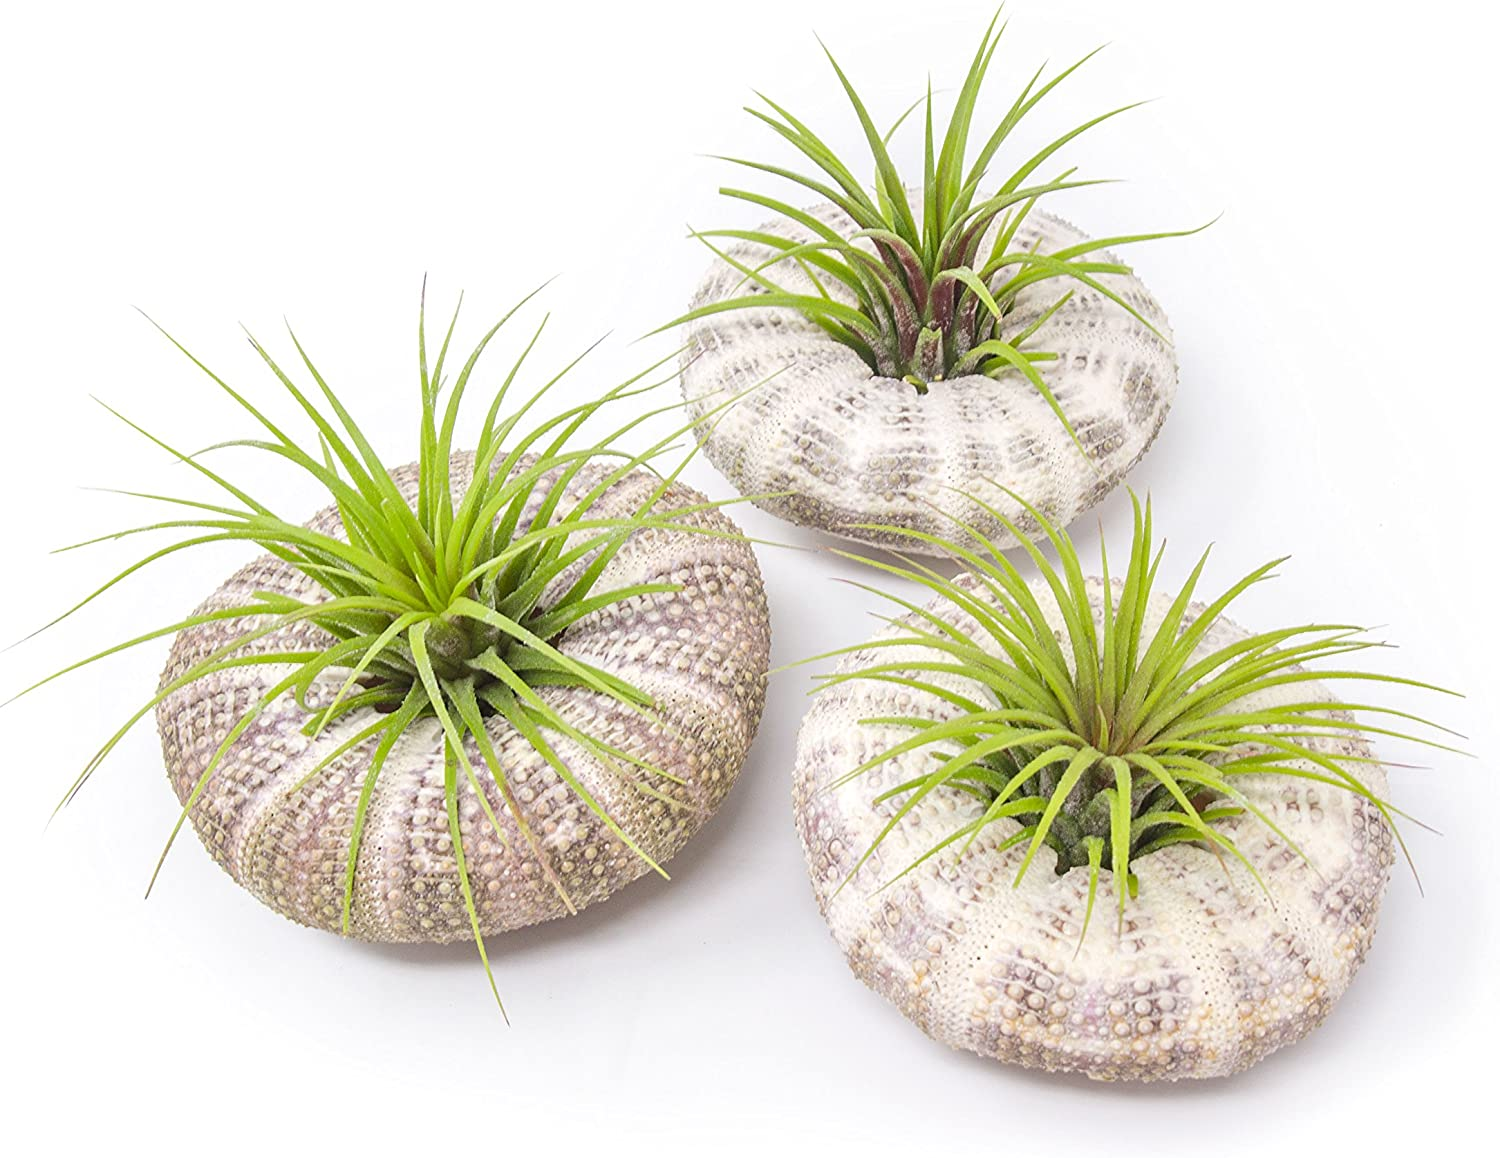 Air Plant Sea Urchin Kit 4 Pack, Large Natural Shell Containers Holder for Live Tillandsia Jellyfish Stand Indoor Home Decor by Plants for Pets